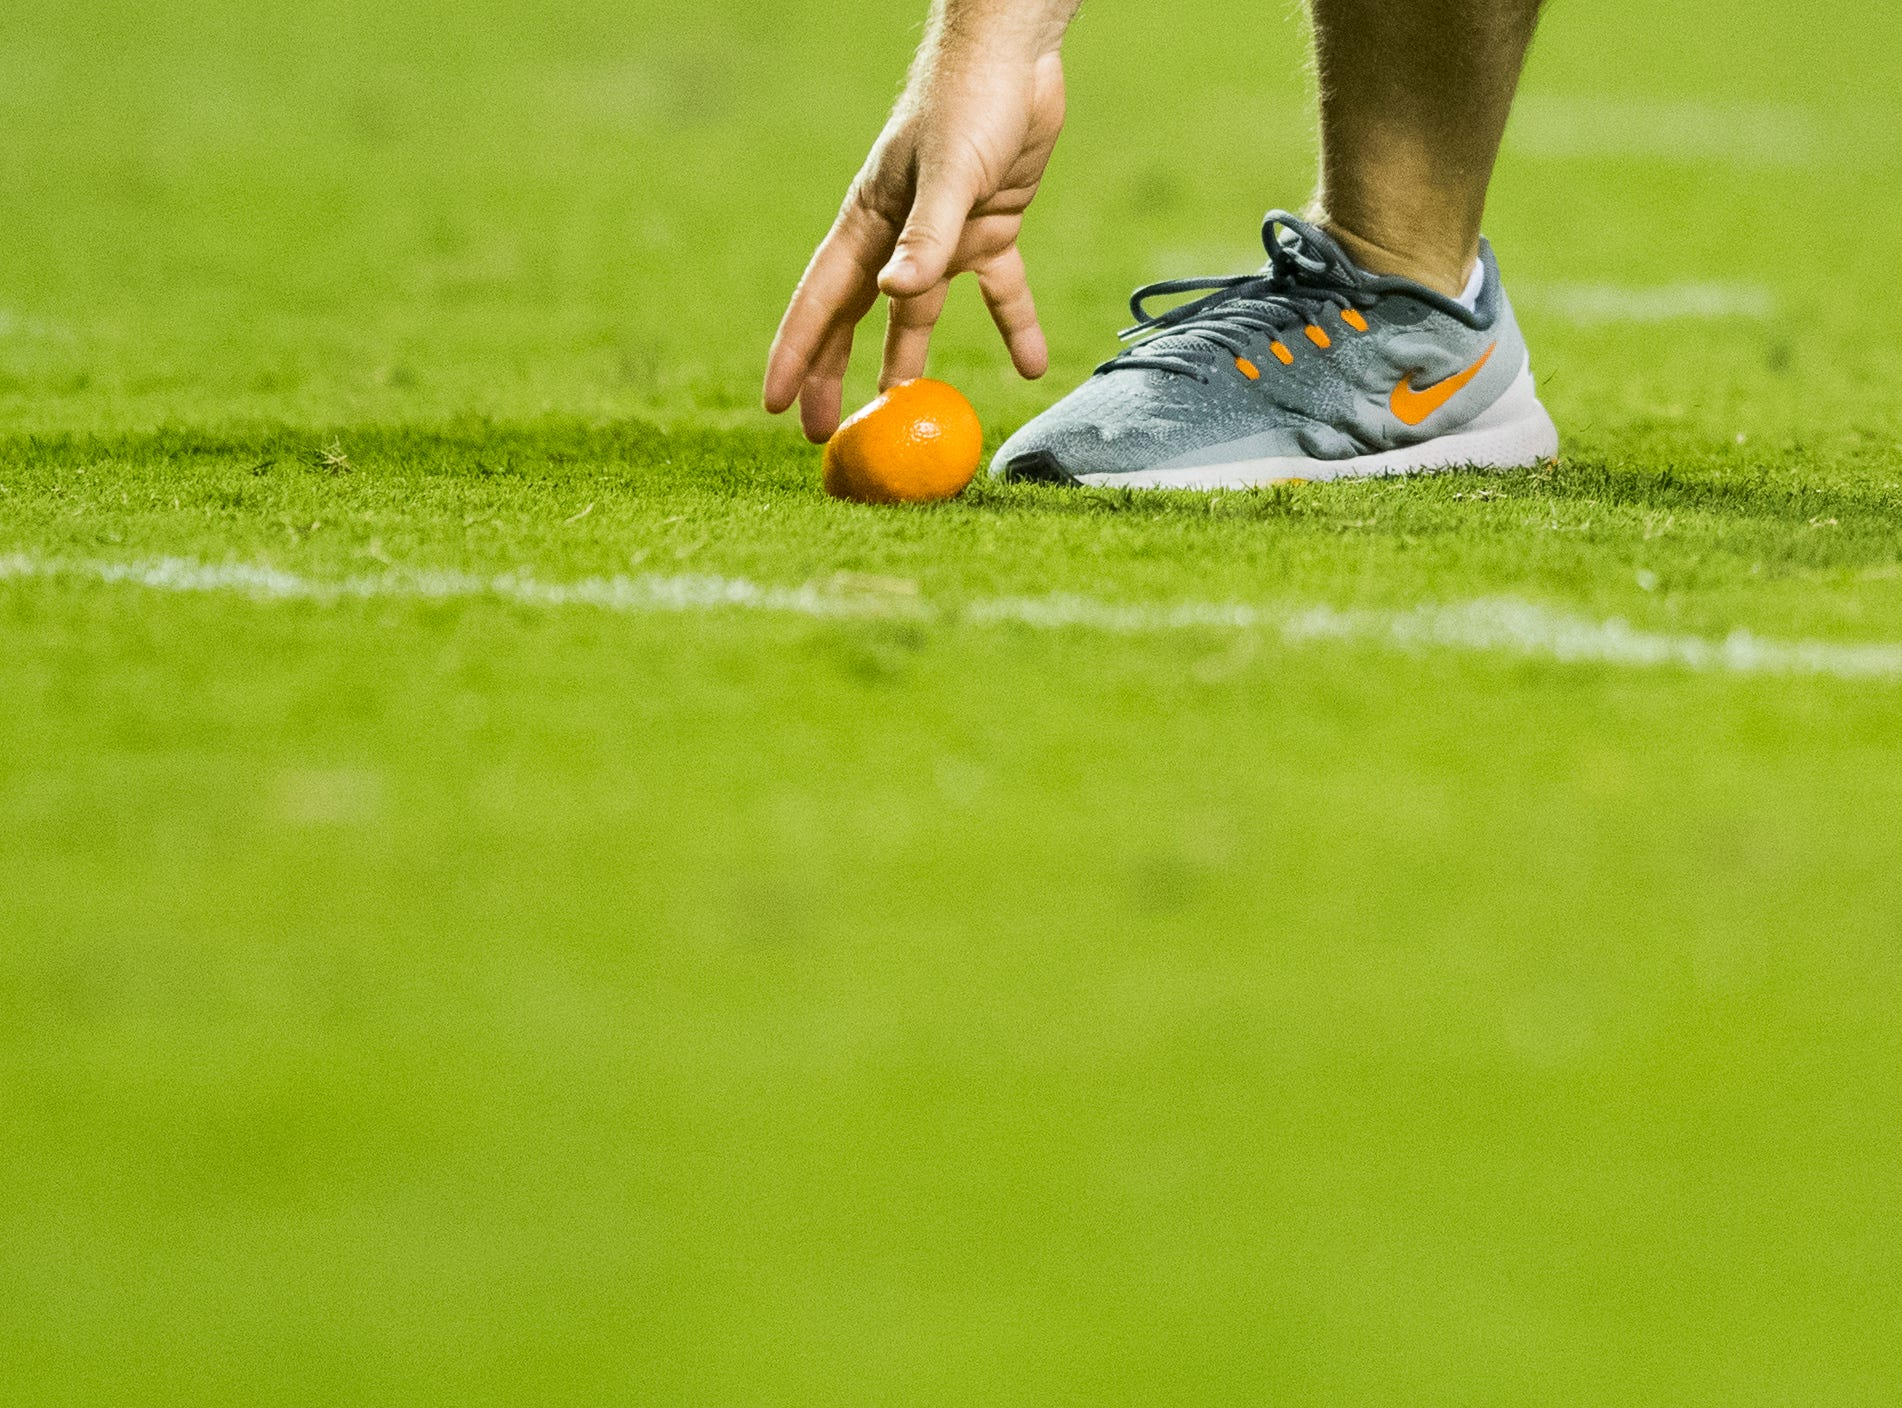 A staff member removes a tangerine that was thrown onto the playing field after a call against Tennessee during a game between Tennessee and Florida at Neyland Stadium in Knoxville, Tennessee on Saturday, September 22, 2018.